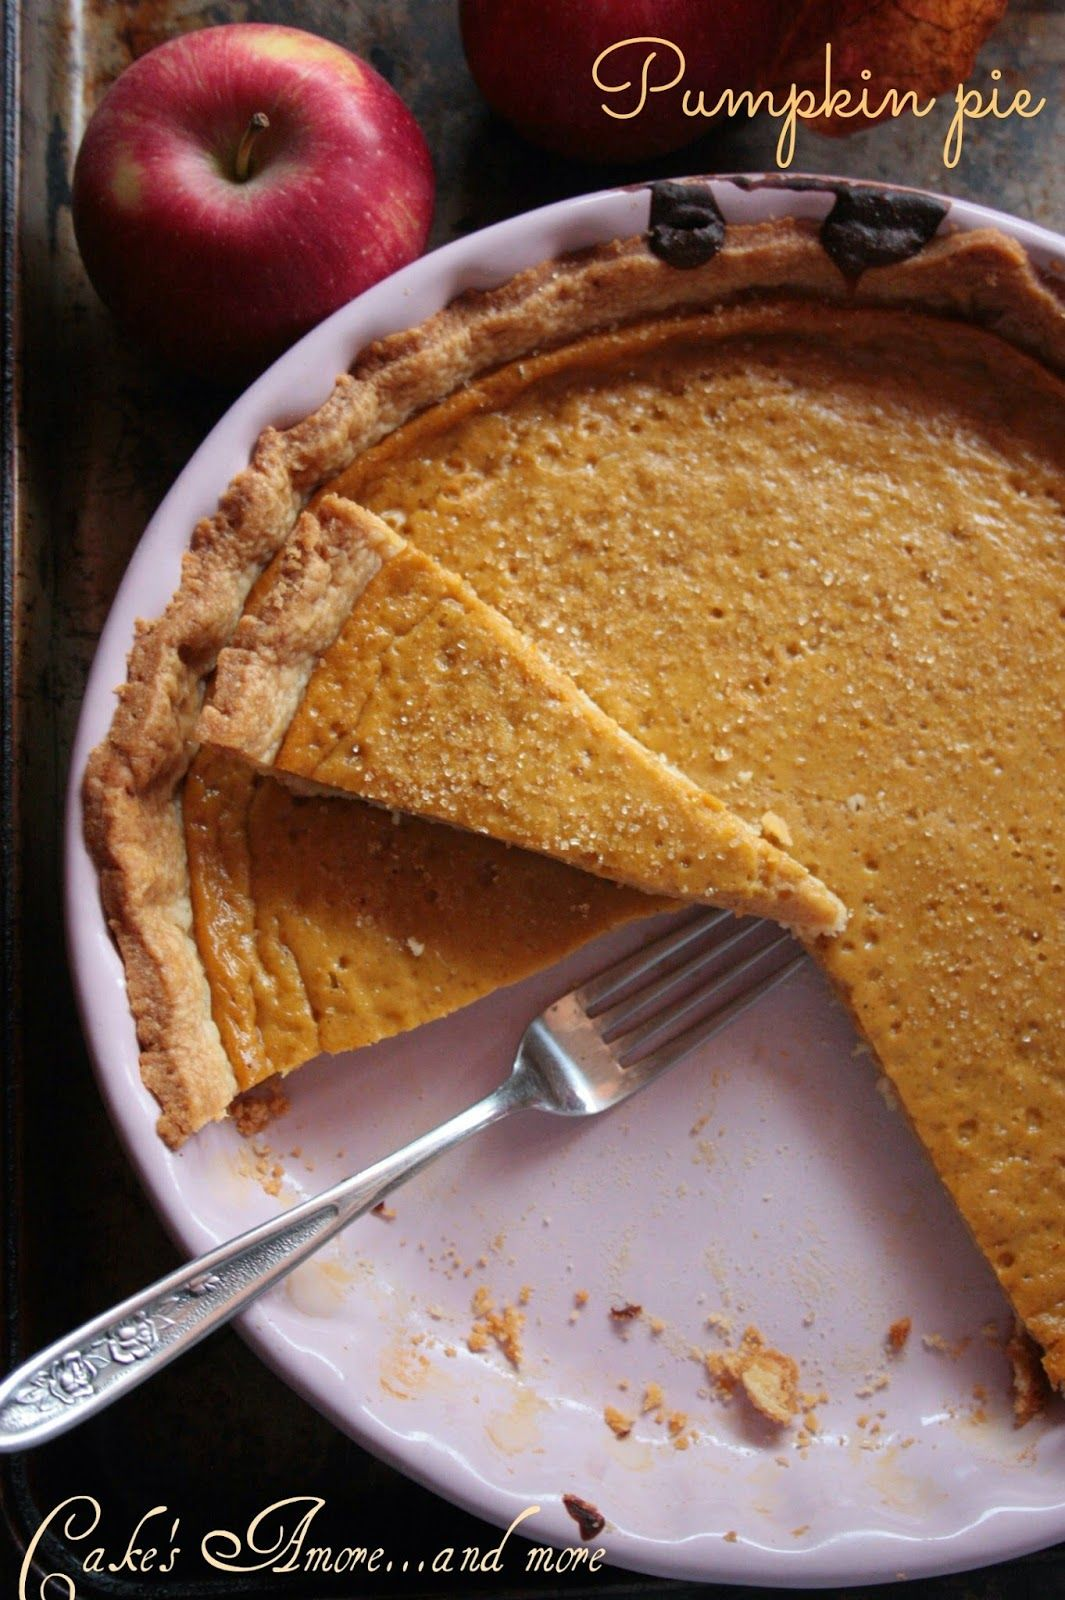 Cake's Amore......and more: Pumpkin Pie